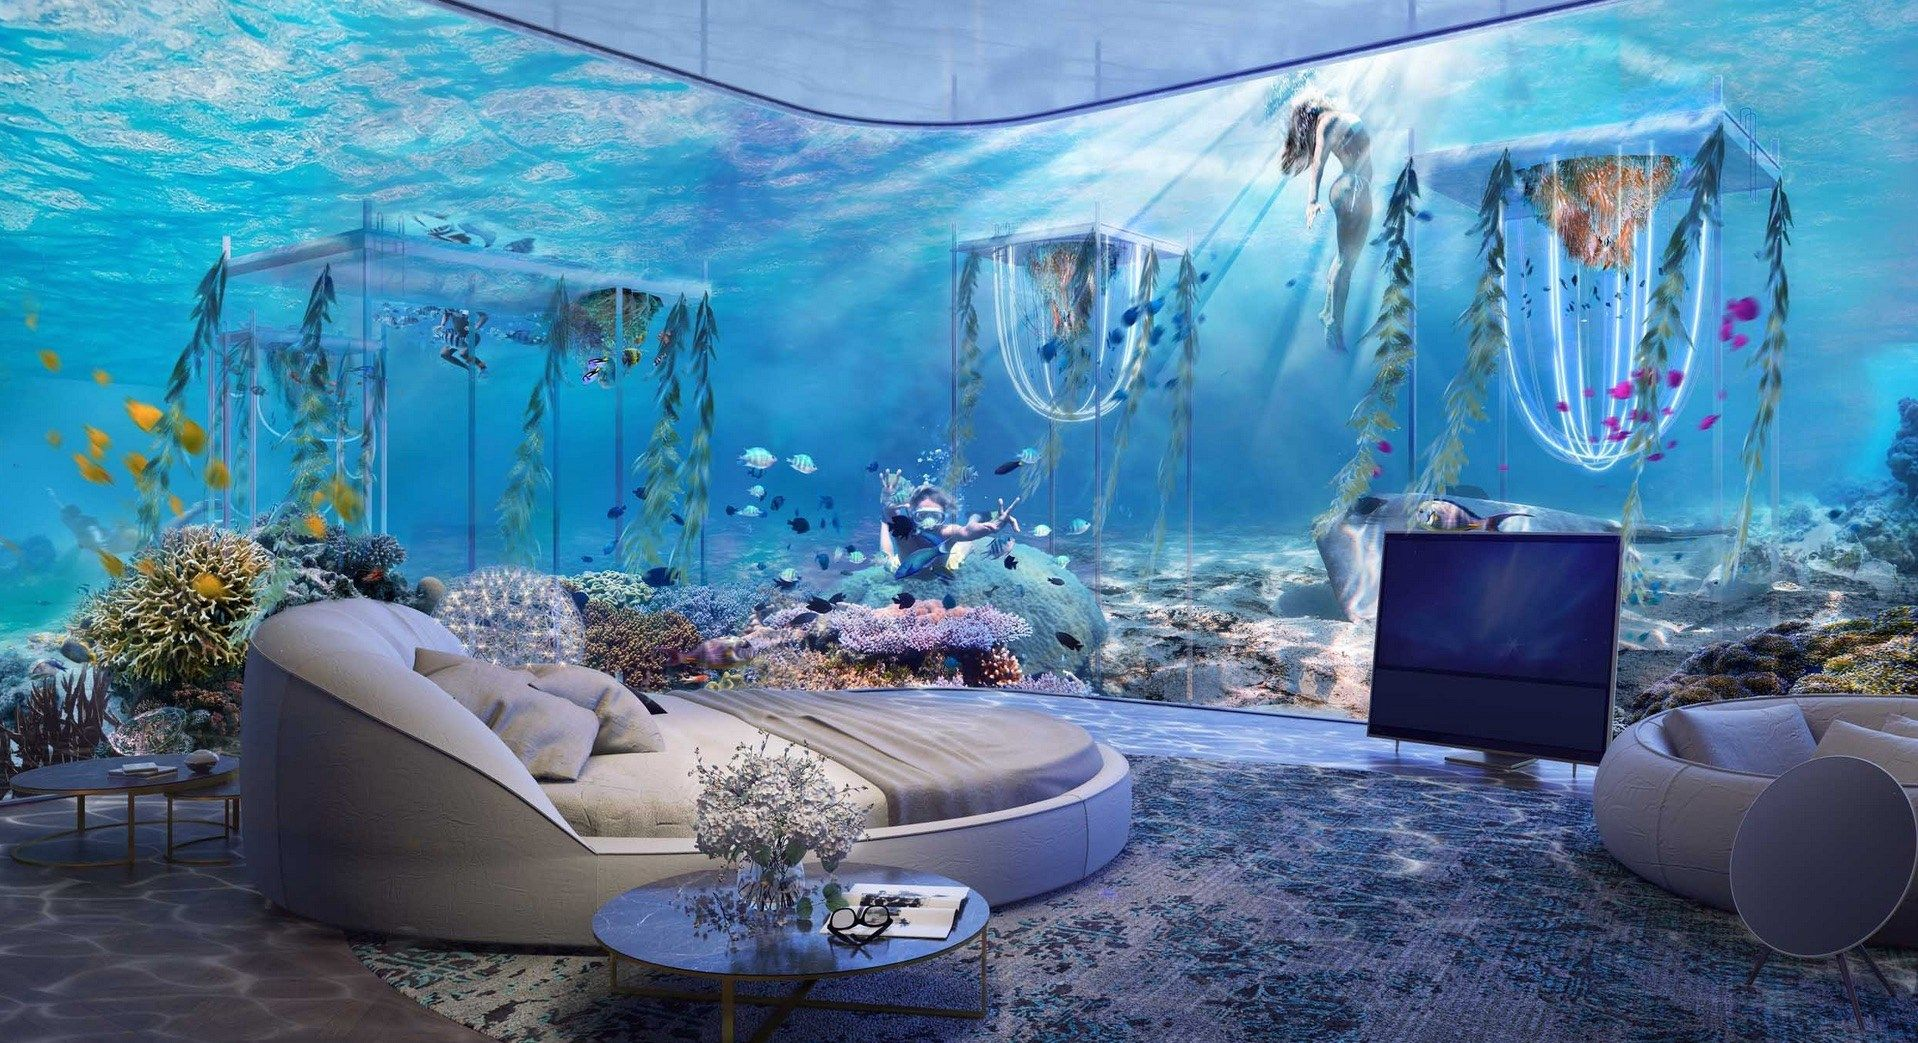 World Underwater Luxury Vessel Resort Coming